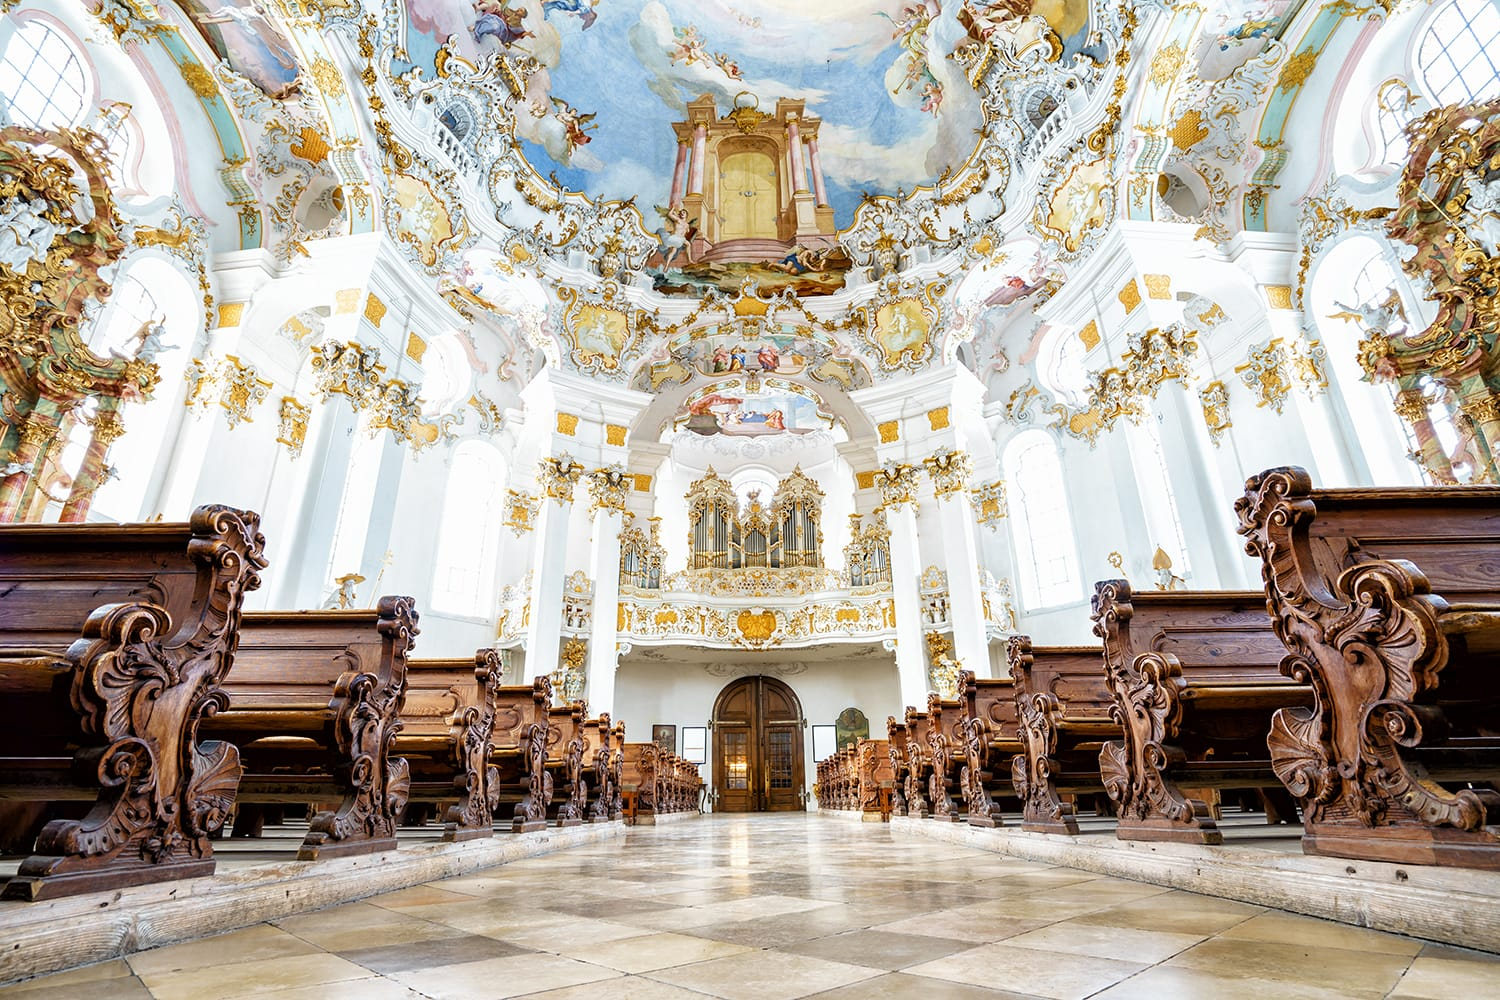 Interior of Wieskirche, Germany.